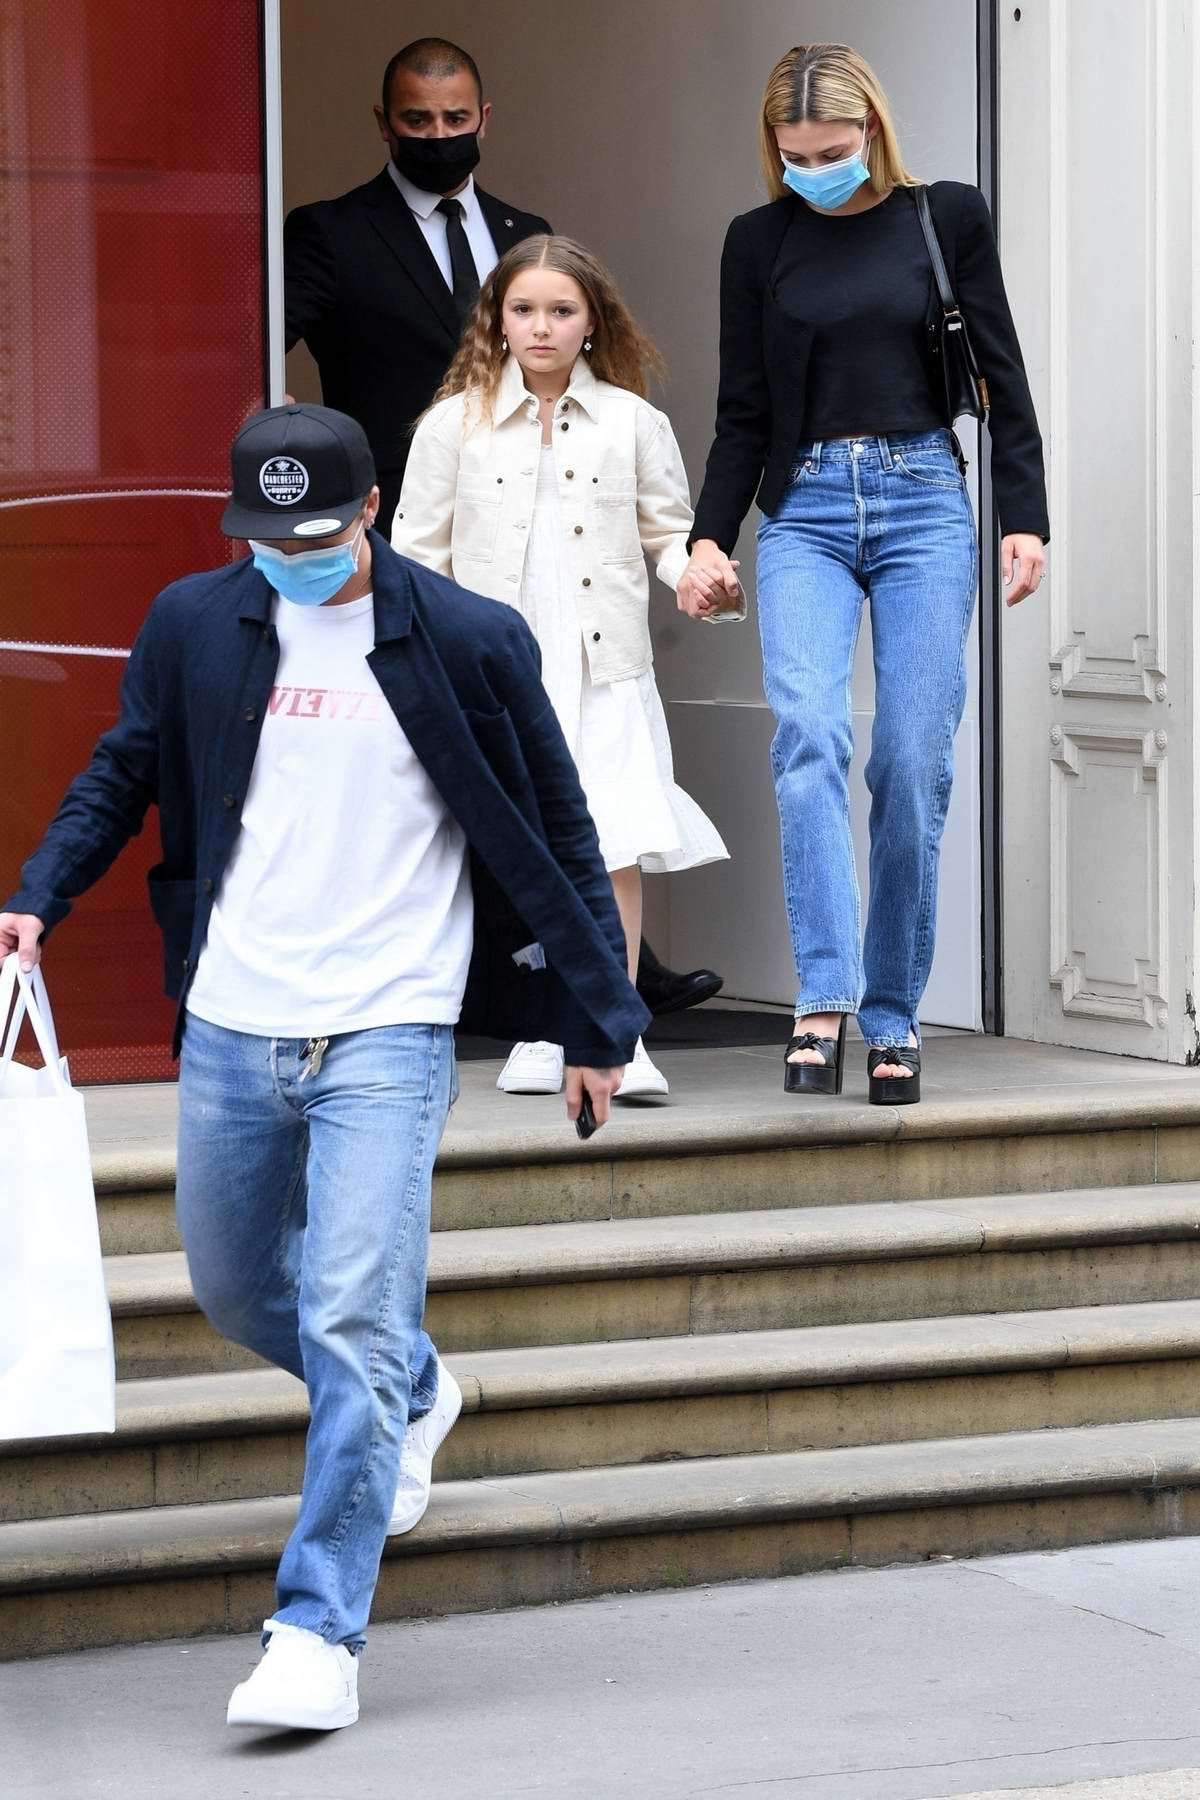 Nicola Peltz and Brooklyn Beckham step out for a shopping trip with Harper Seven at Victoria Beckham's Mayfair store in London, UK